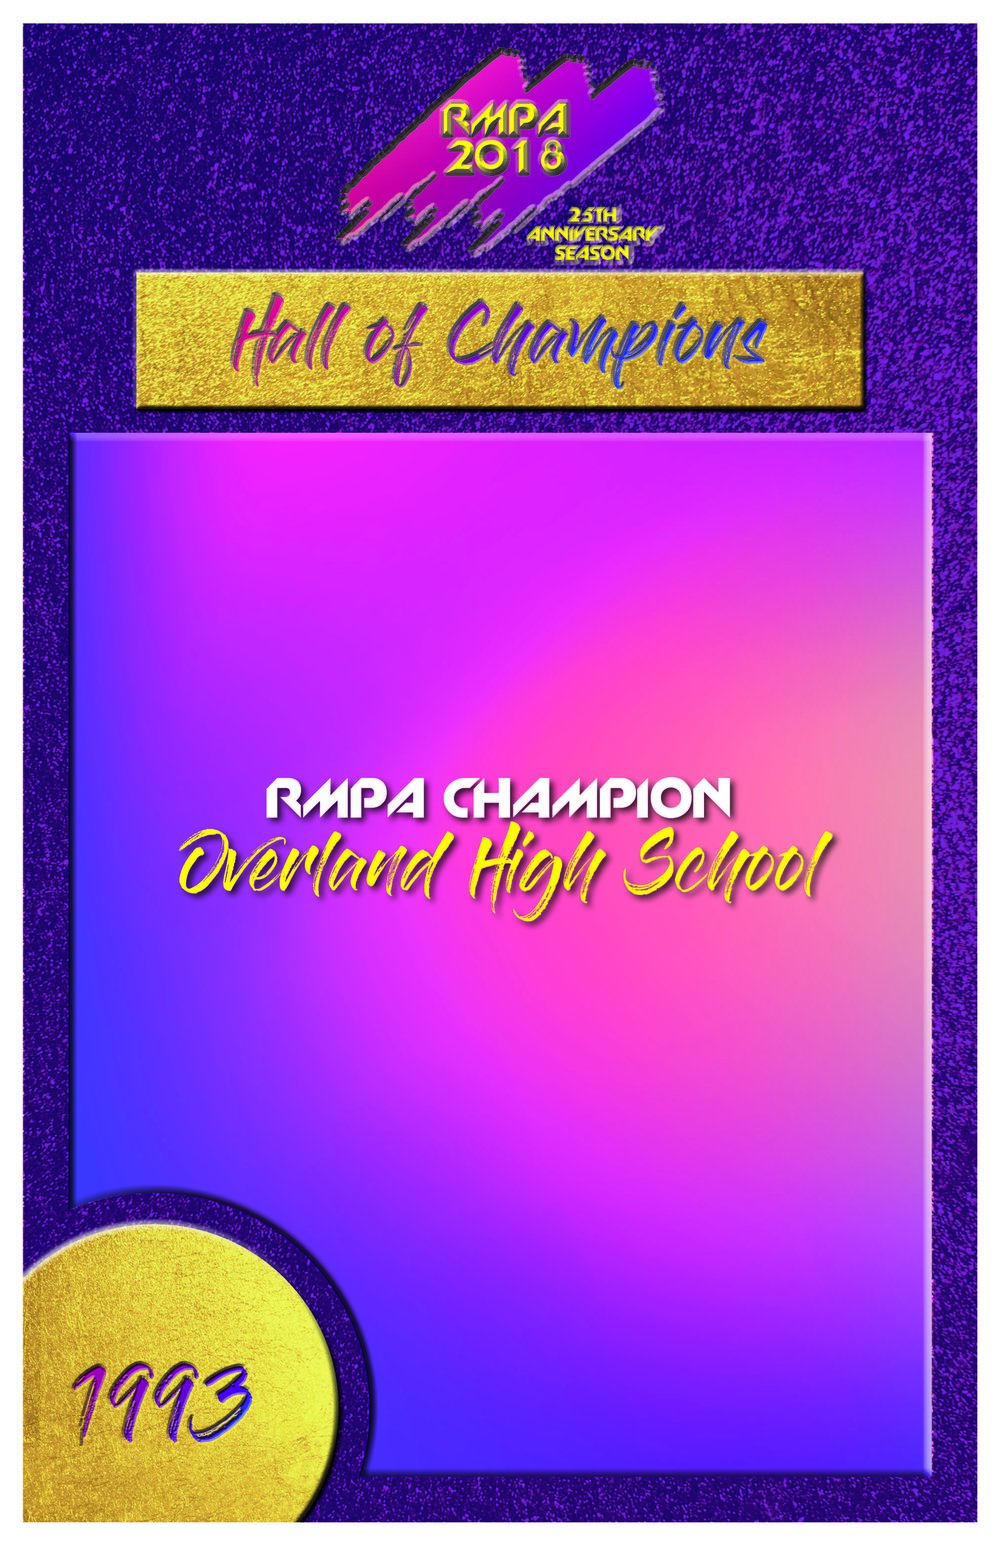 Hall of Champions Posters_Page_01.jpg